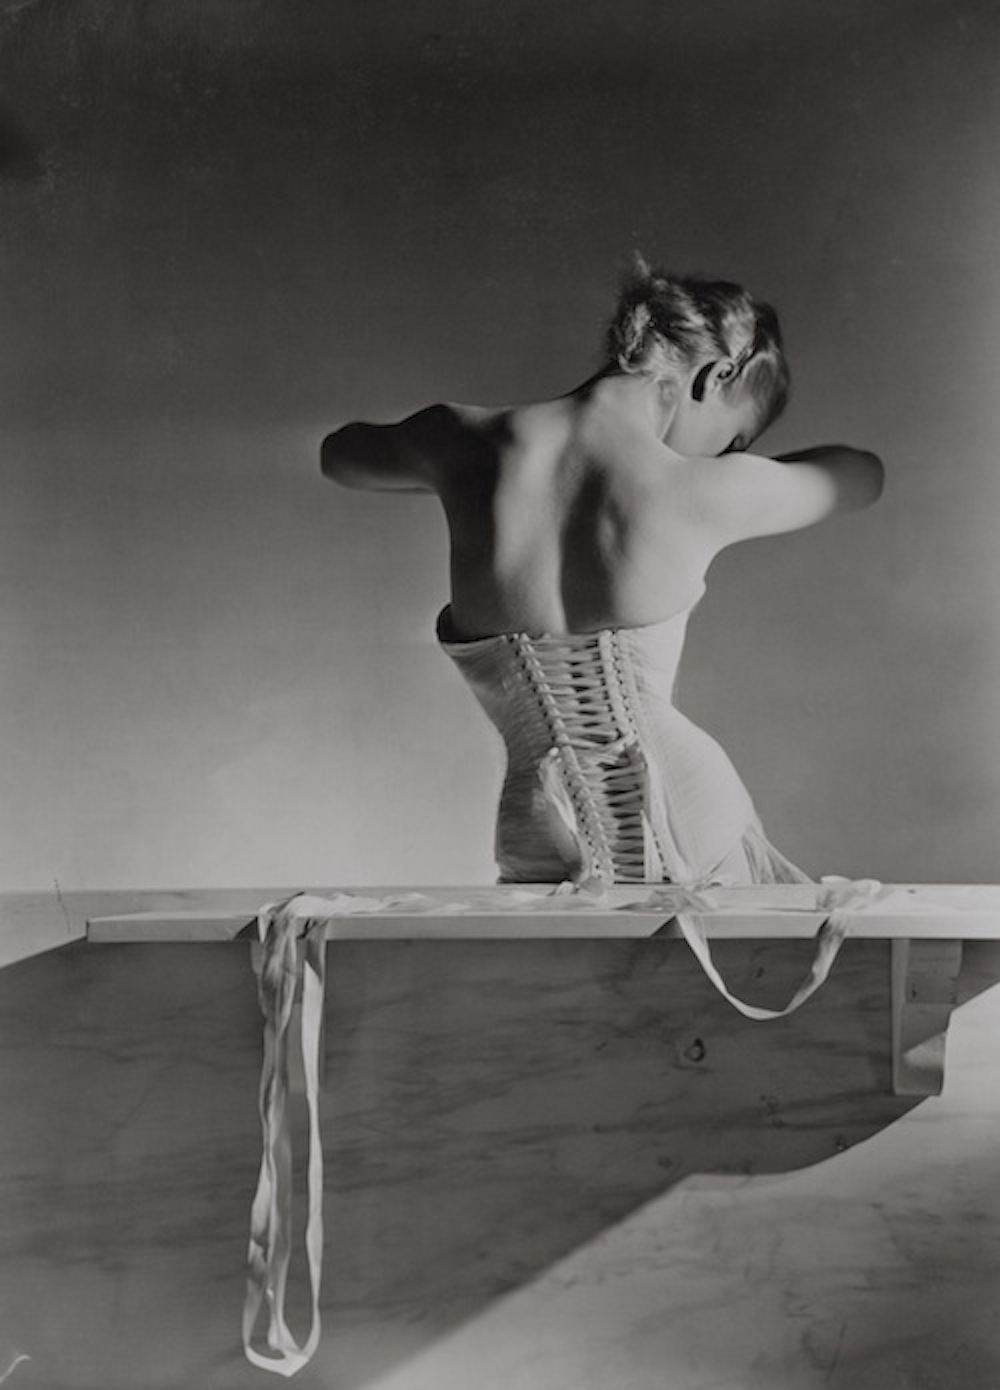 6._Corset_by_Detolle_for_Mainbocher_1939__Conde_Nast_Horst_Estate